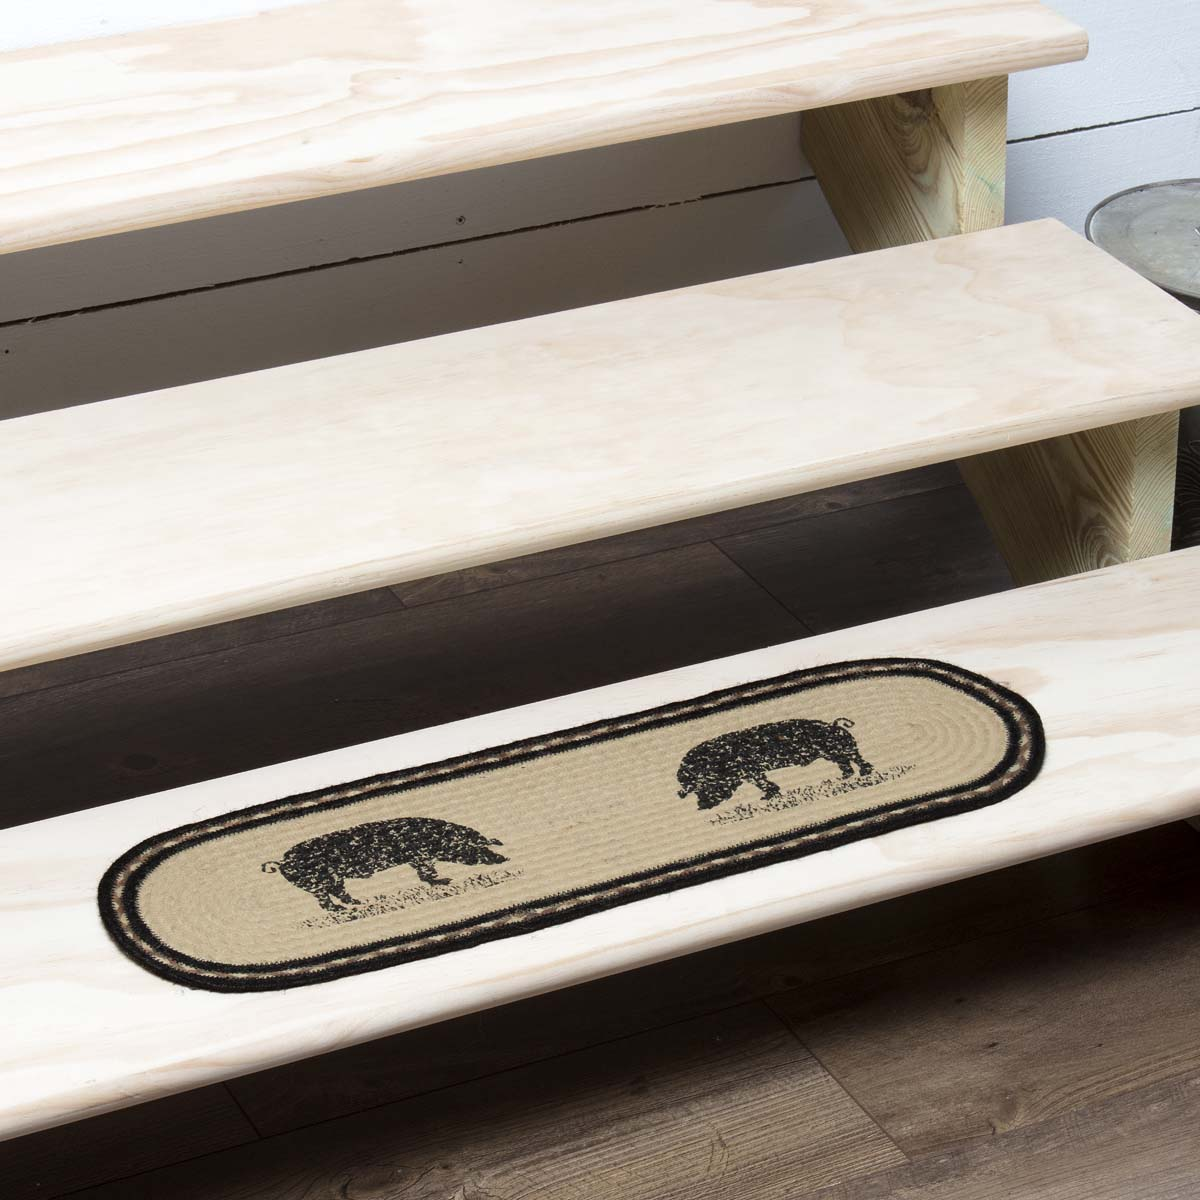 Bleached White Farmhouse Flooring Miller Farm Charcoal Pig Jute Latex Backing Stenciled Nature Print Oval Stair Tread